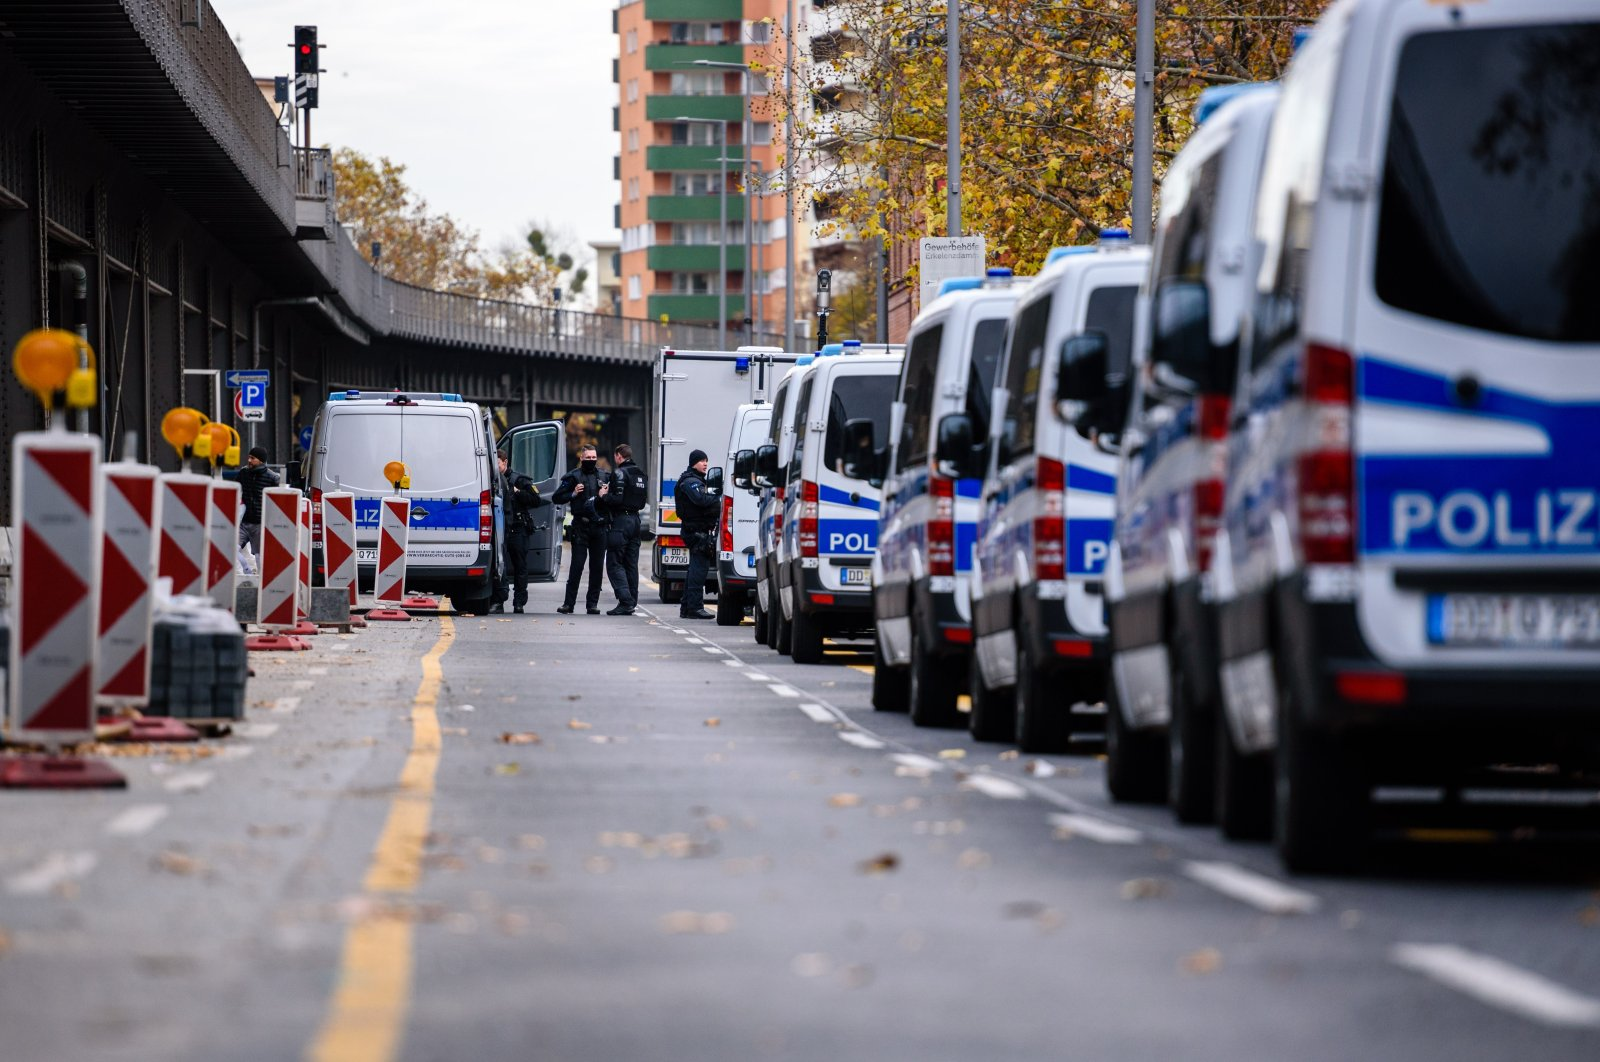 Police cars can be seen on Gitschiner Strasse during raids in which police arrested three suspects, Nov. 17, 2020. (Reuters Photo)